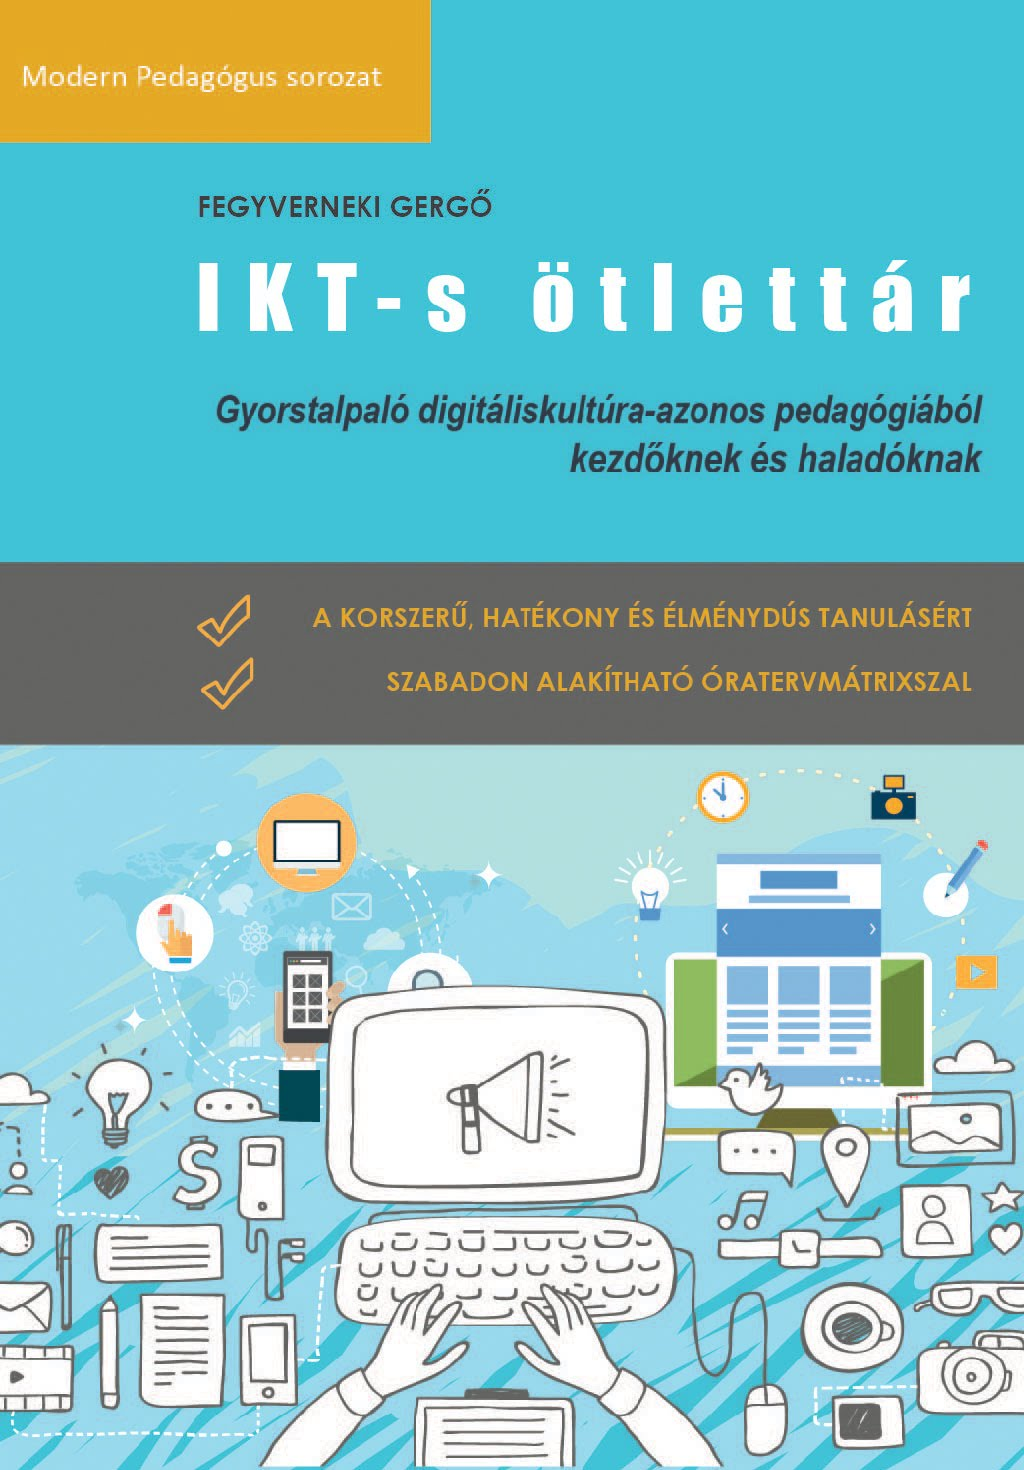 https://neteducatio.hu/uzlet/ikt-s-otlettar/